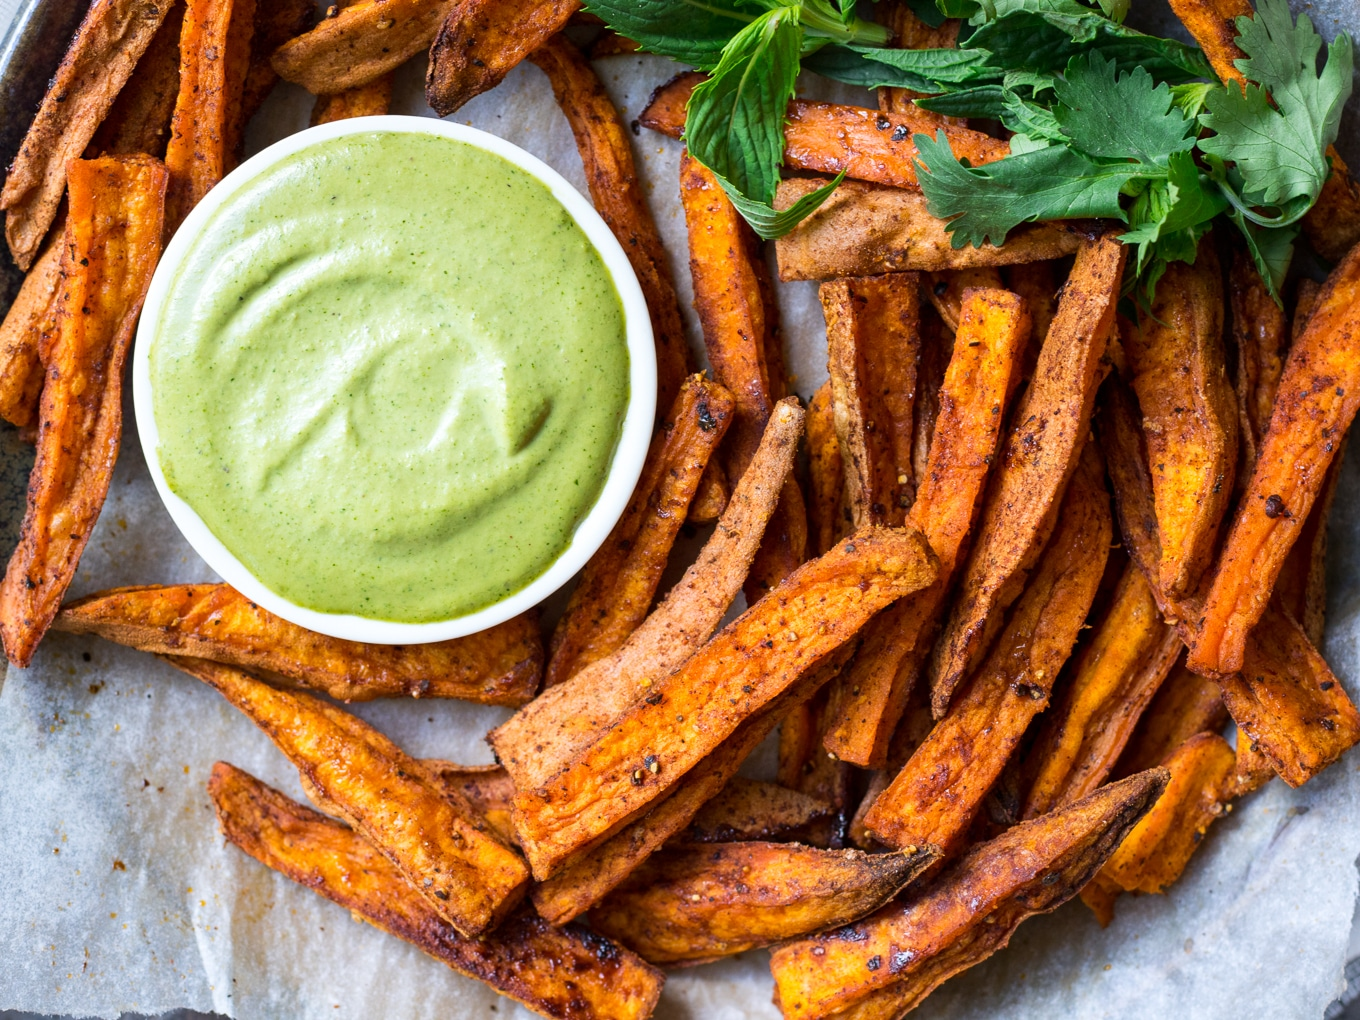 Cinnamon Paprika Sweet Potato Fries arranged on a plate with dipping sauce and herbs.